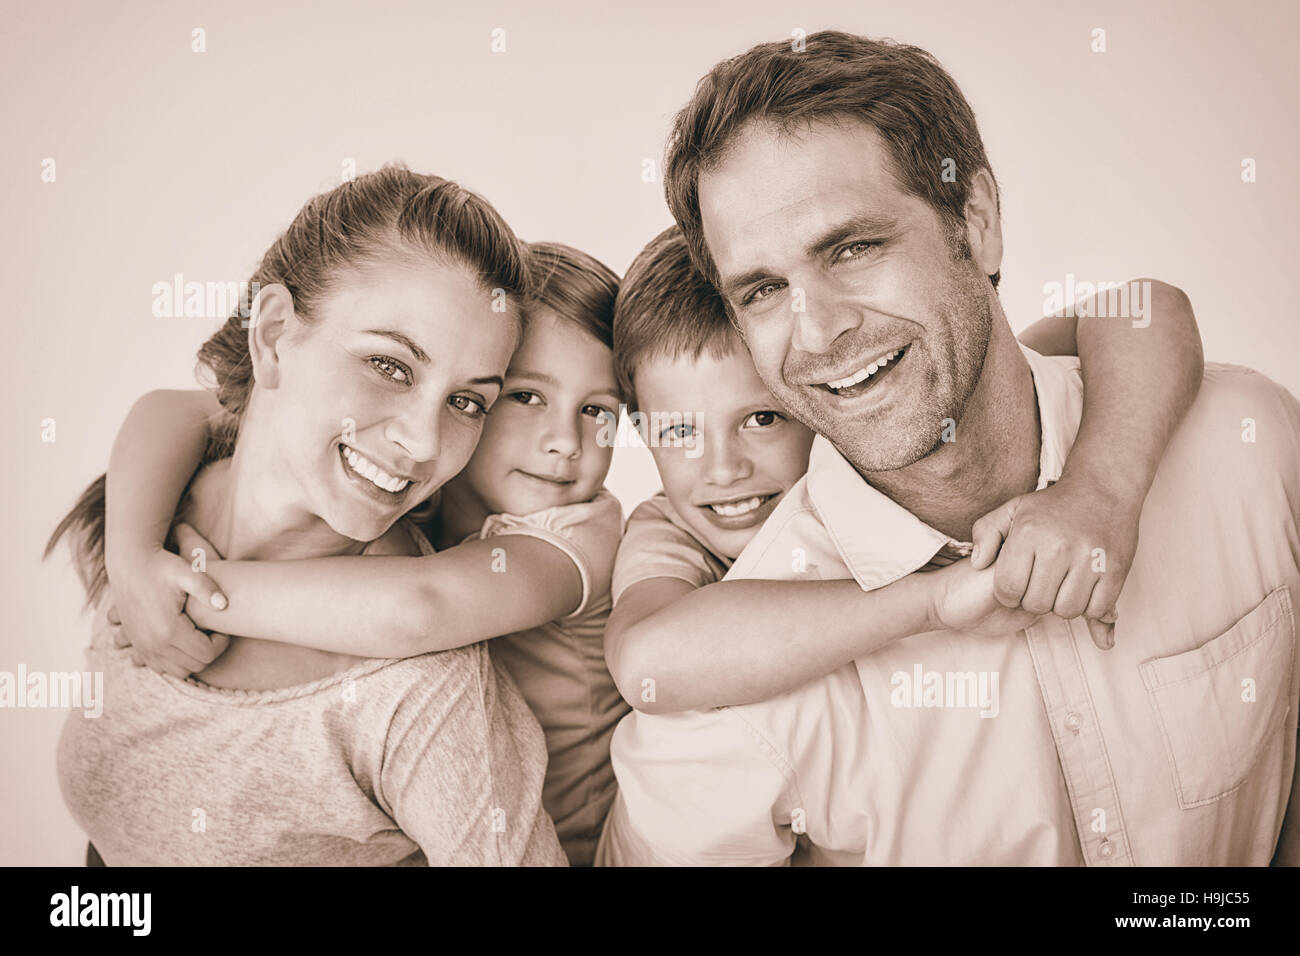 Smiling young family looking at camera together - Stock Image